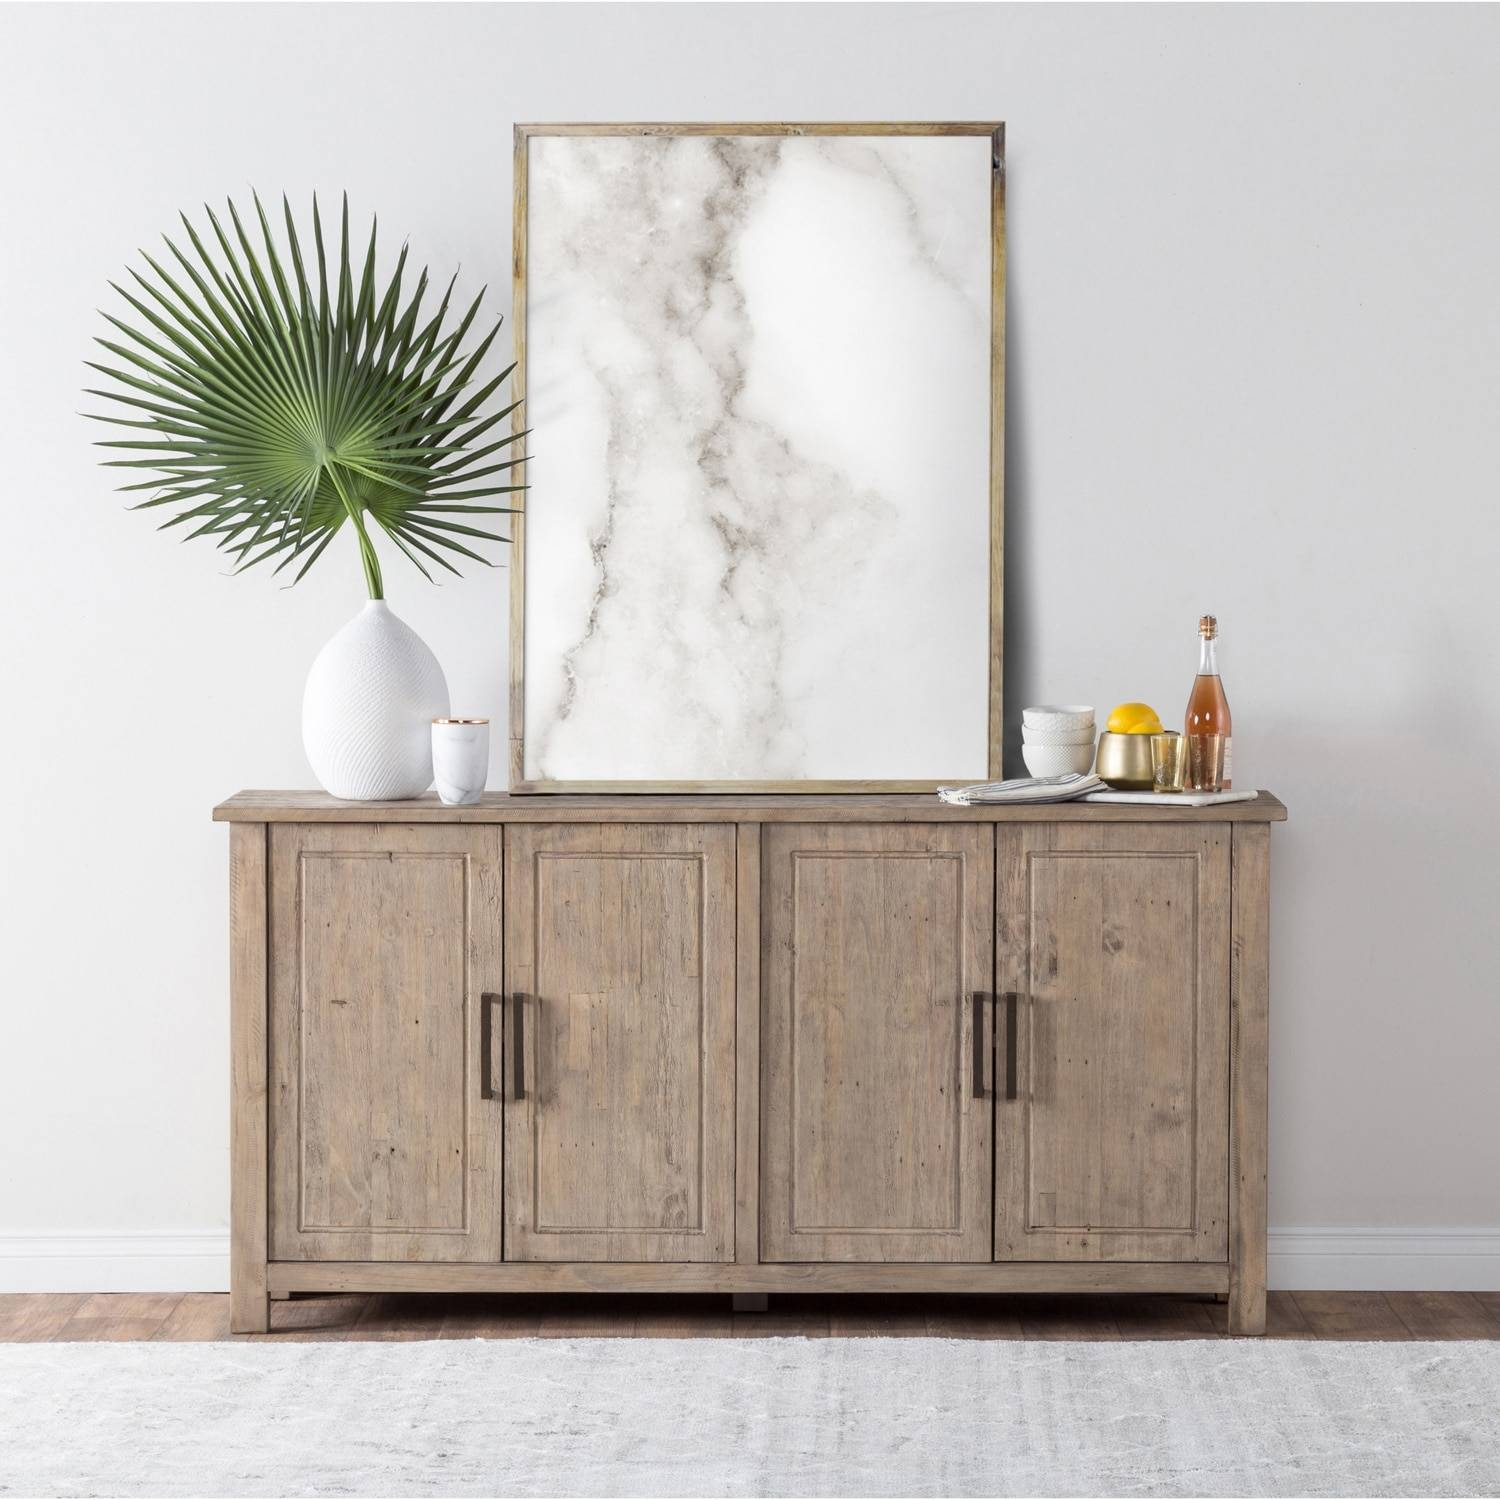 Aires Reclaimed Wood 72 Inch Sideboardkosas Home – Free Within Most Recently Released 72 Inch Sideboards (#4 of 15)